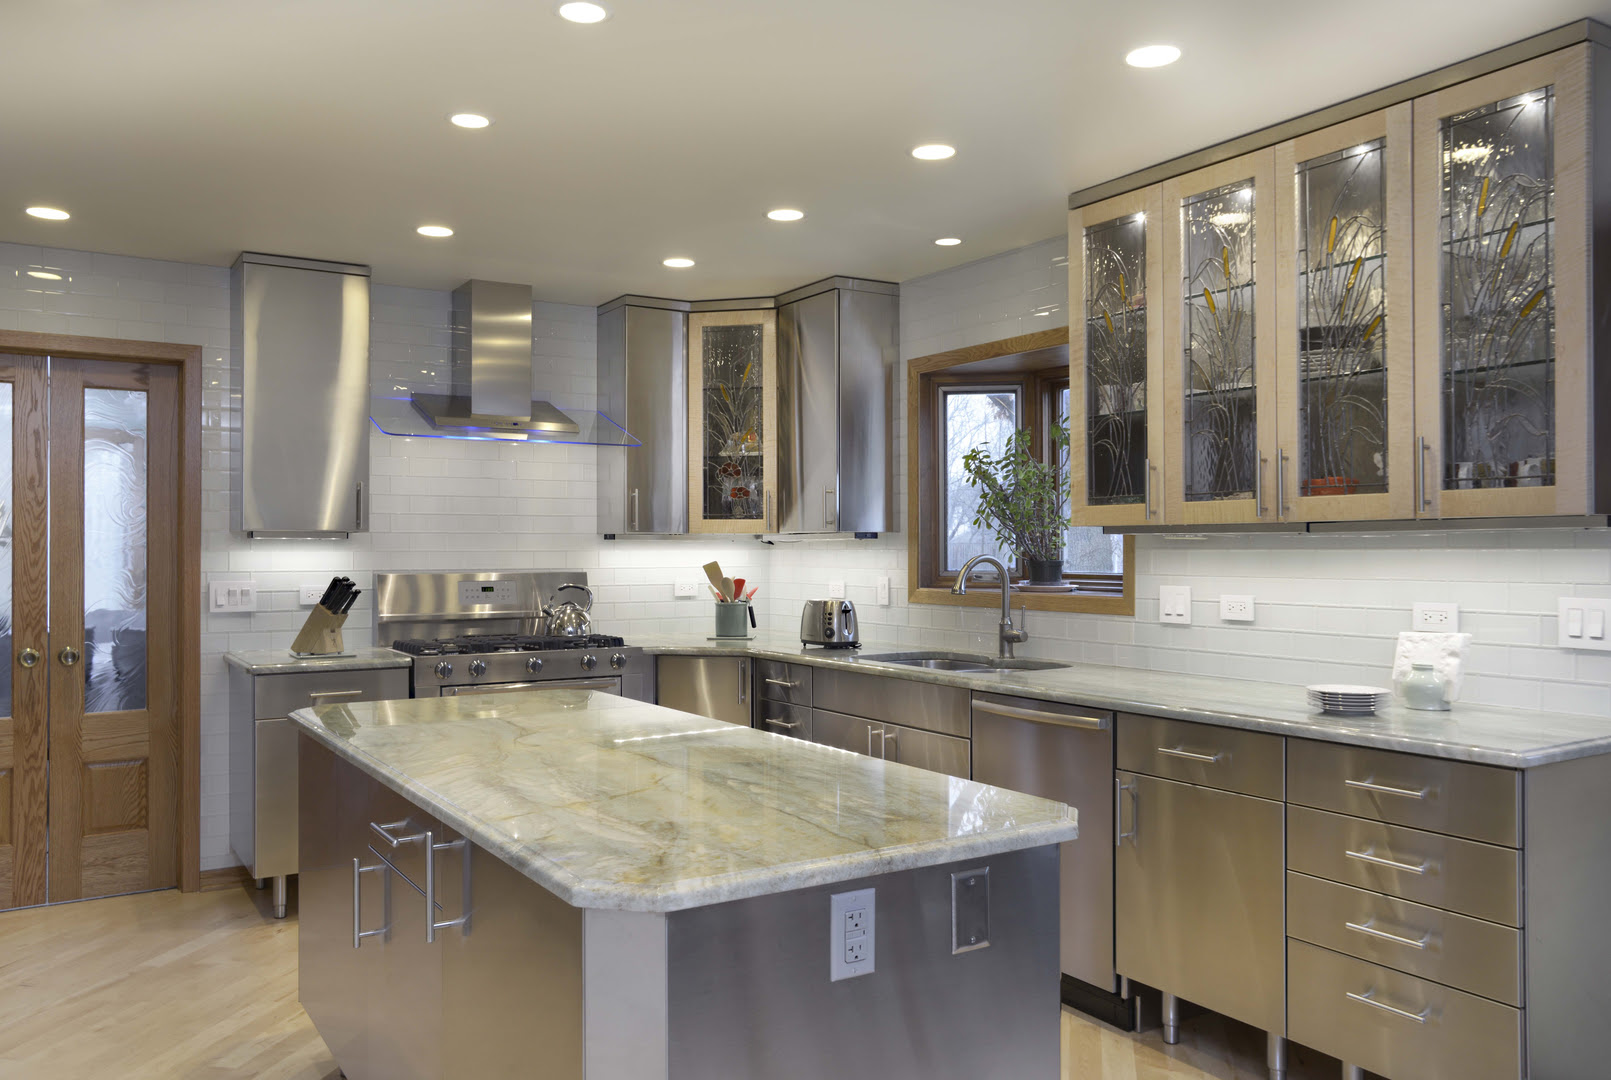 Stainless Steel Kitchens Stainless Steel Kitchen Cabinets Stainless Steel Countertops Metal Cabinets